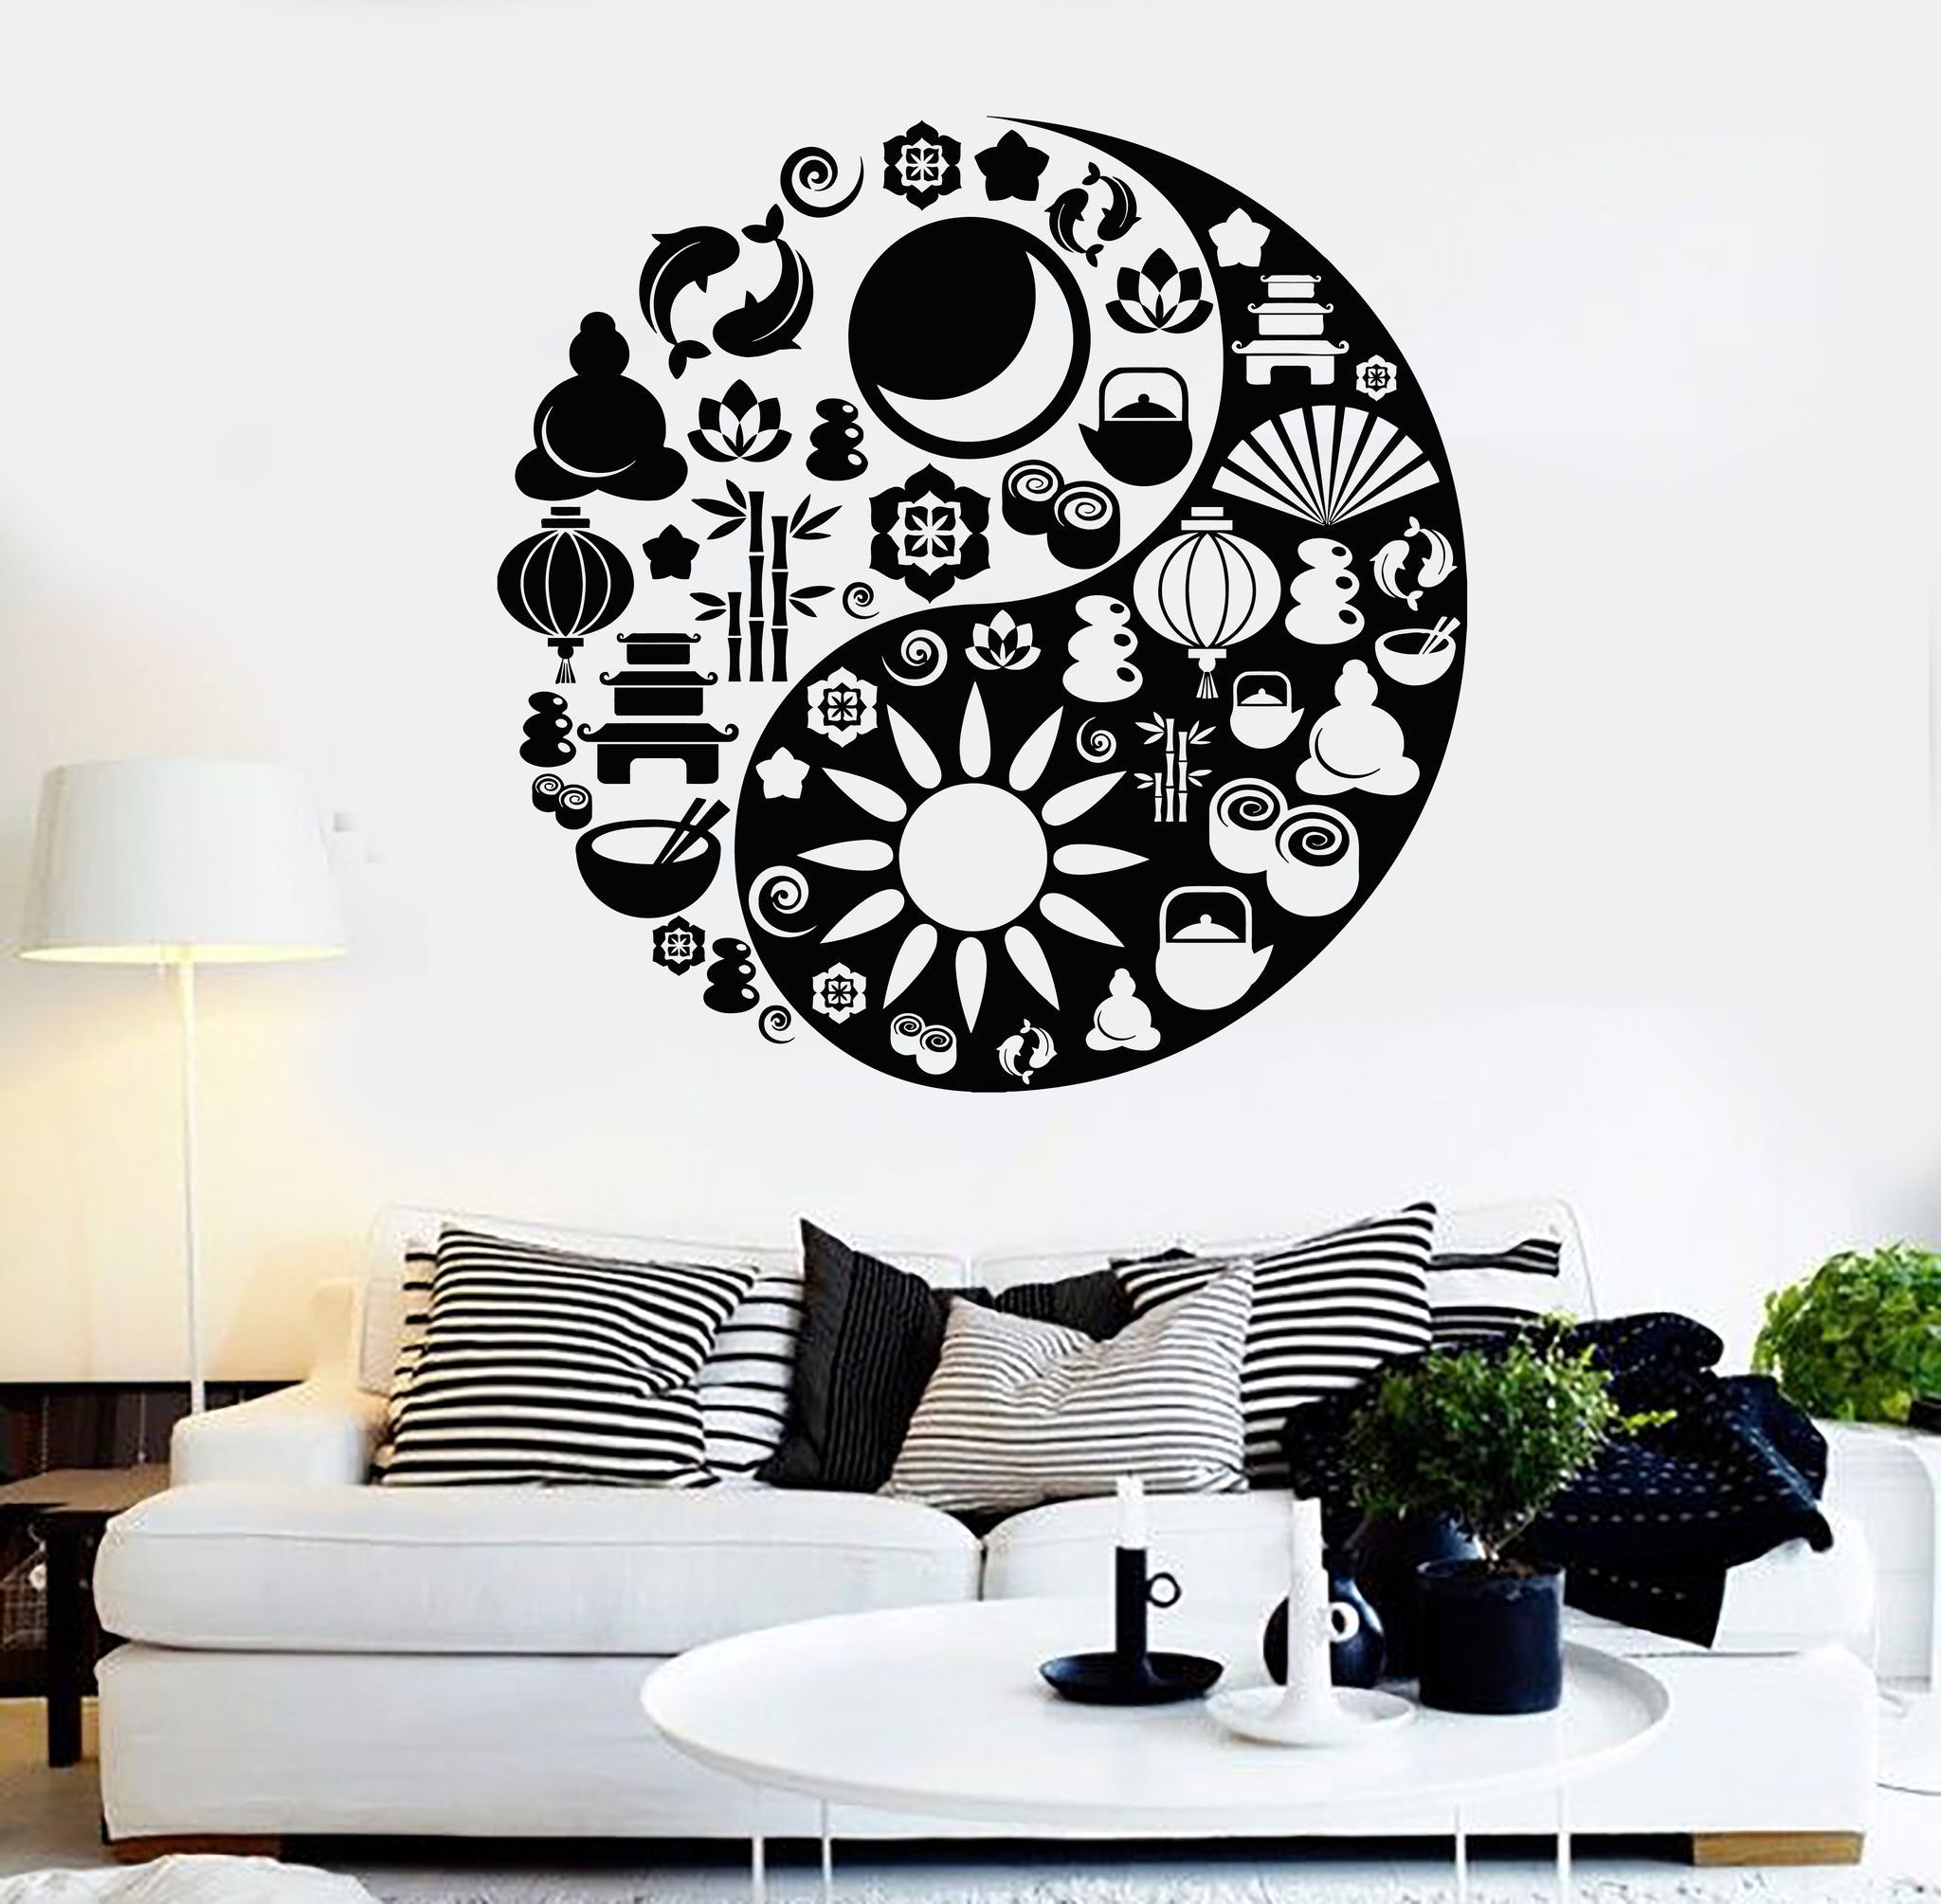 Vinyl Wall Decal Yin Yang Zen Buddhism Spa Salon Asian Style - Vinyl wall decals asian